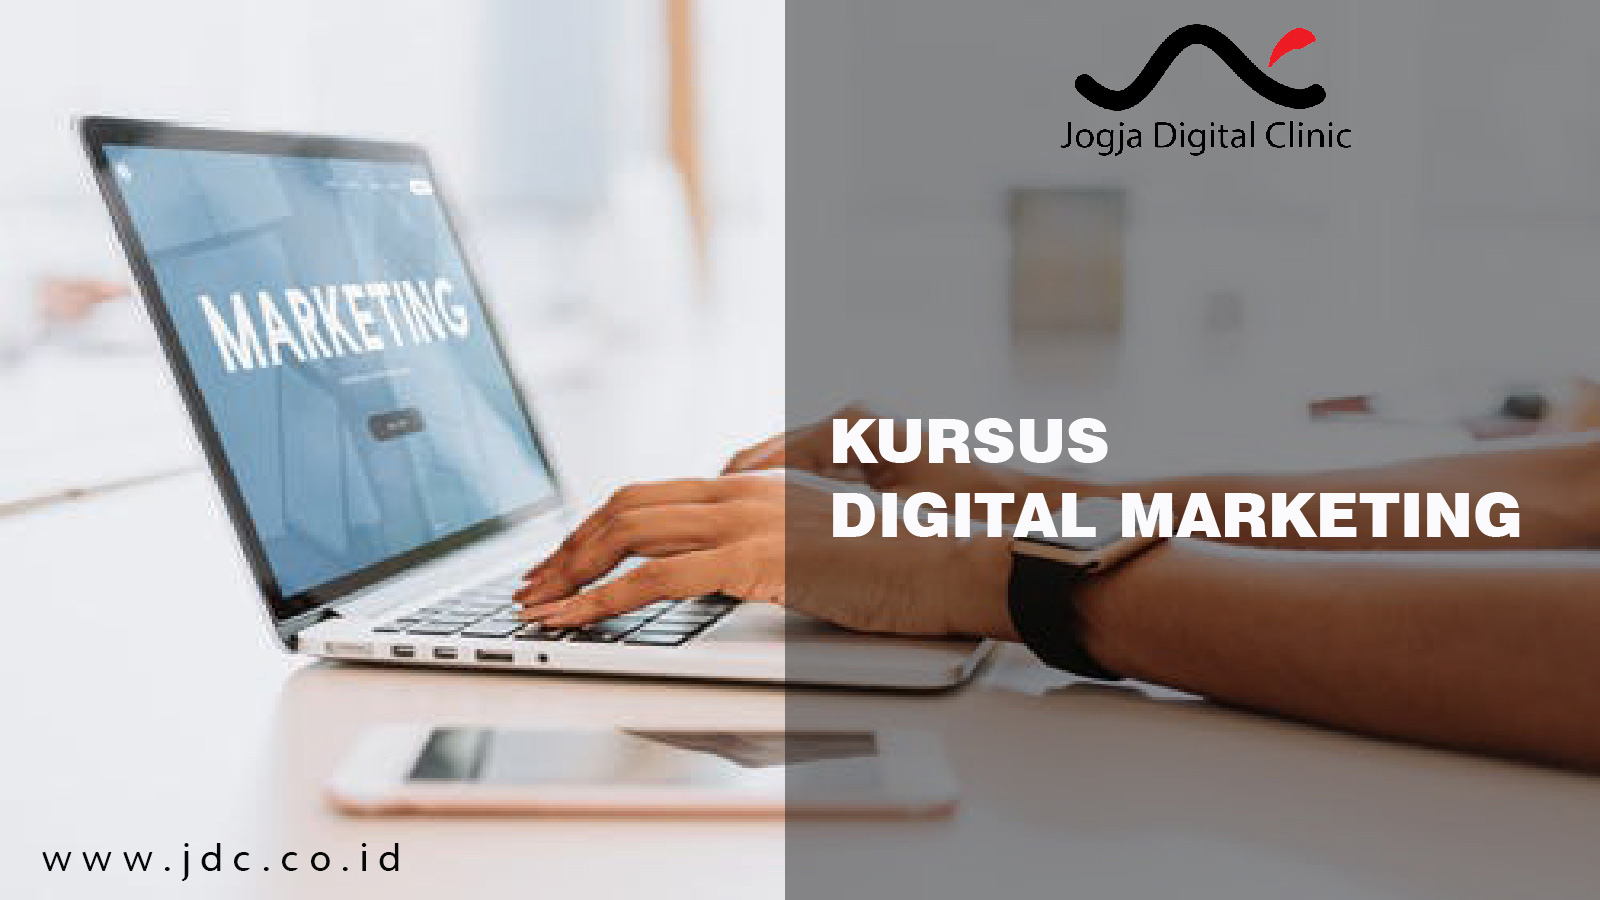 kursus digital marketing terpercaya